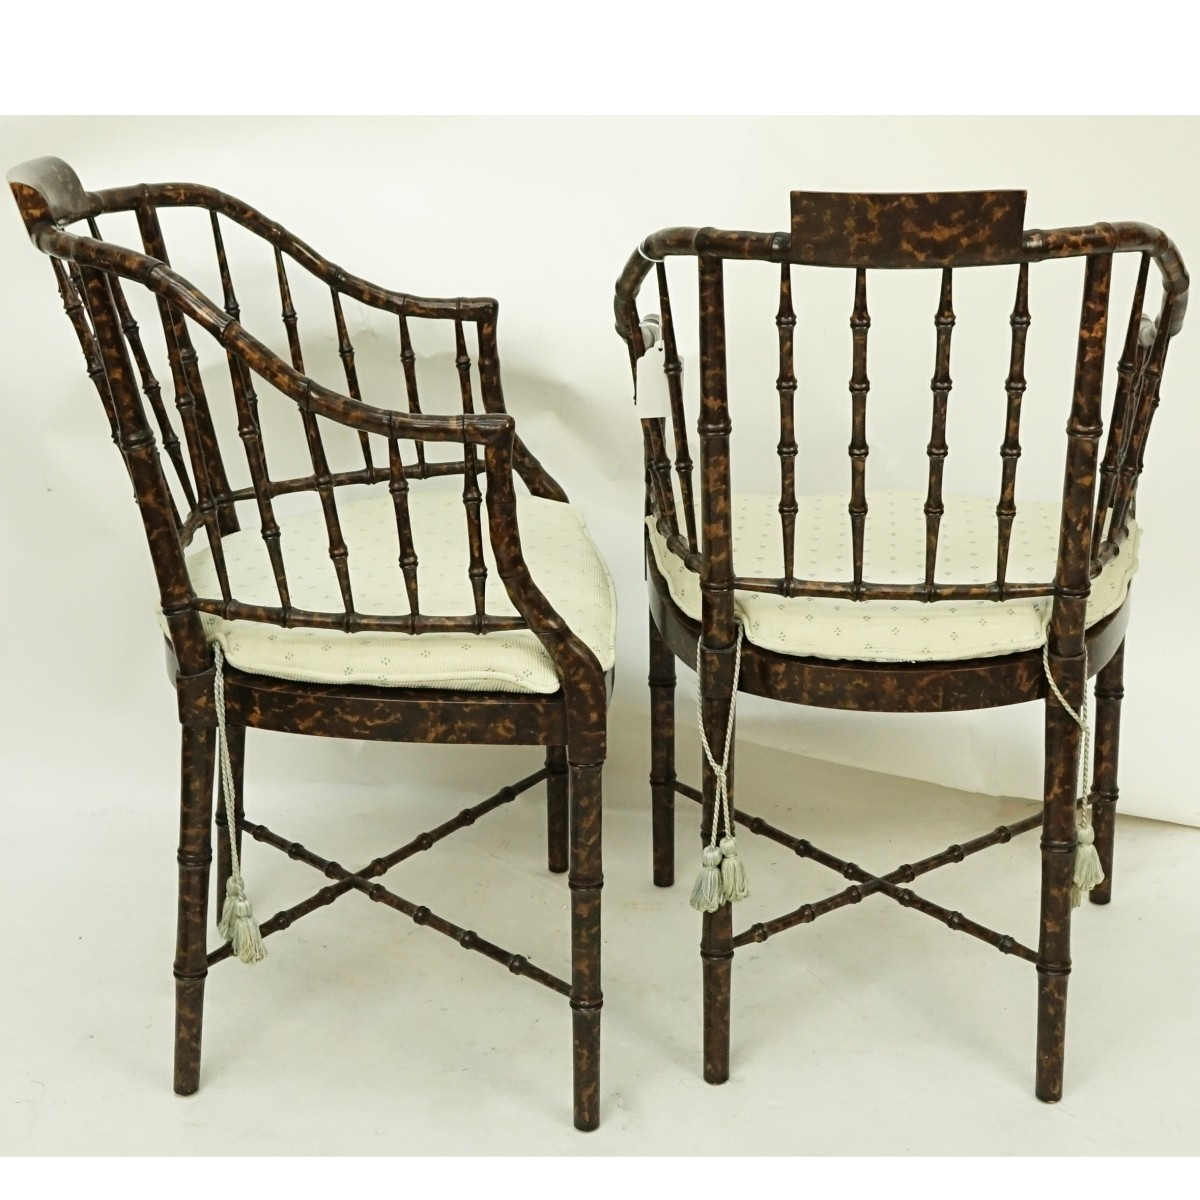 Pair of Faux Tortoise Bamboo Stylized Armchairs